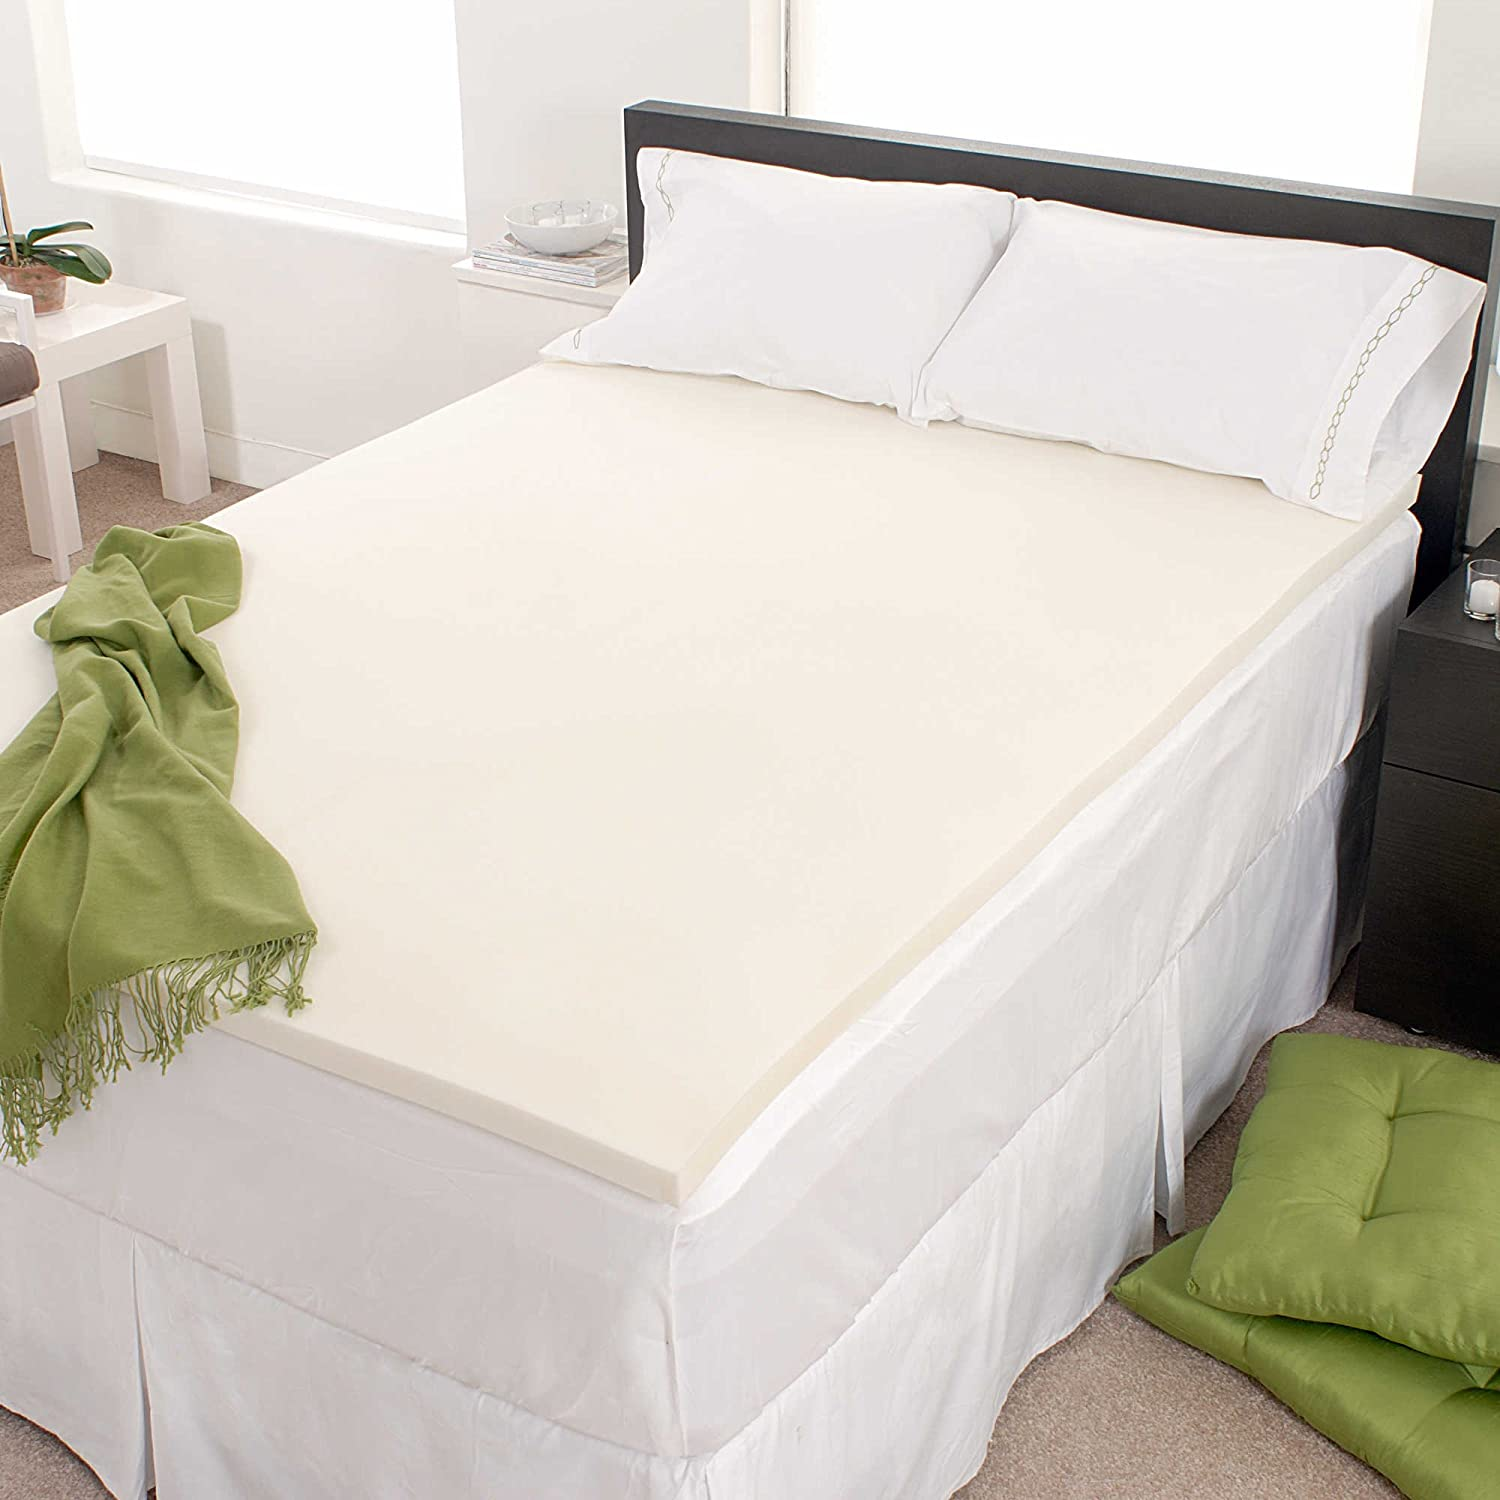 FoamRush 3 Thick Full Size Memory Foam Pad Mattress Topper Made in USA